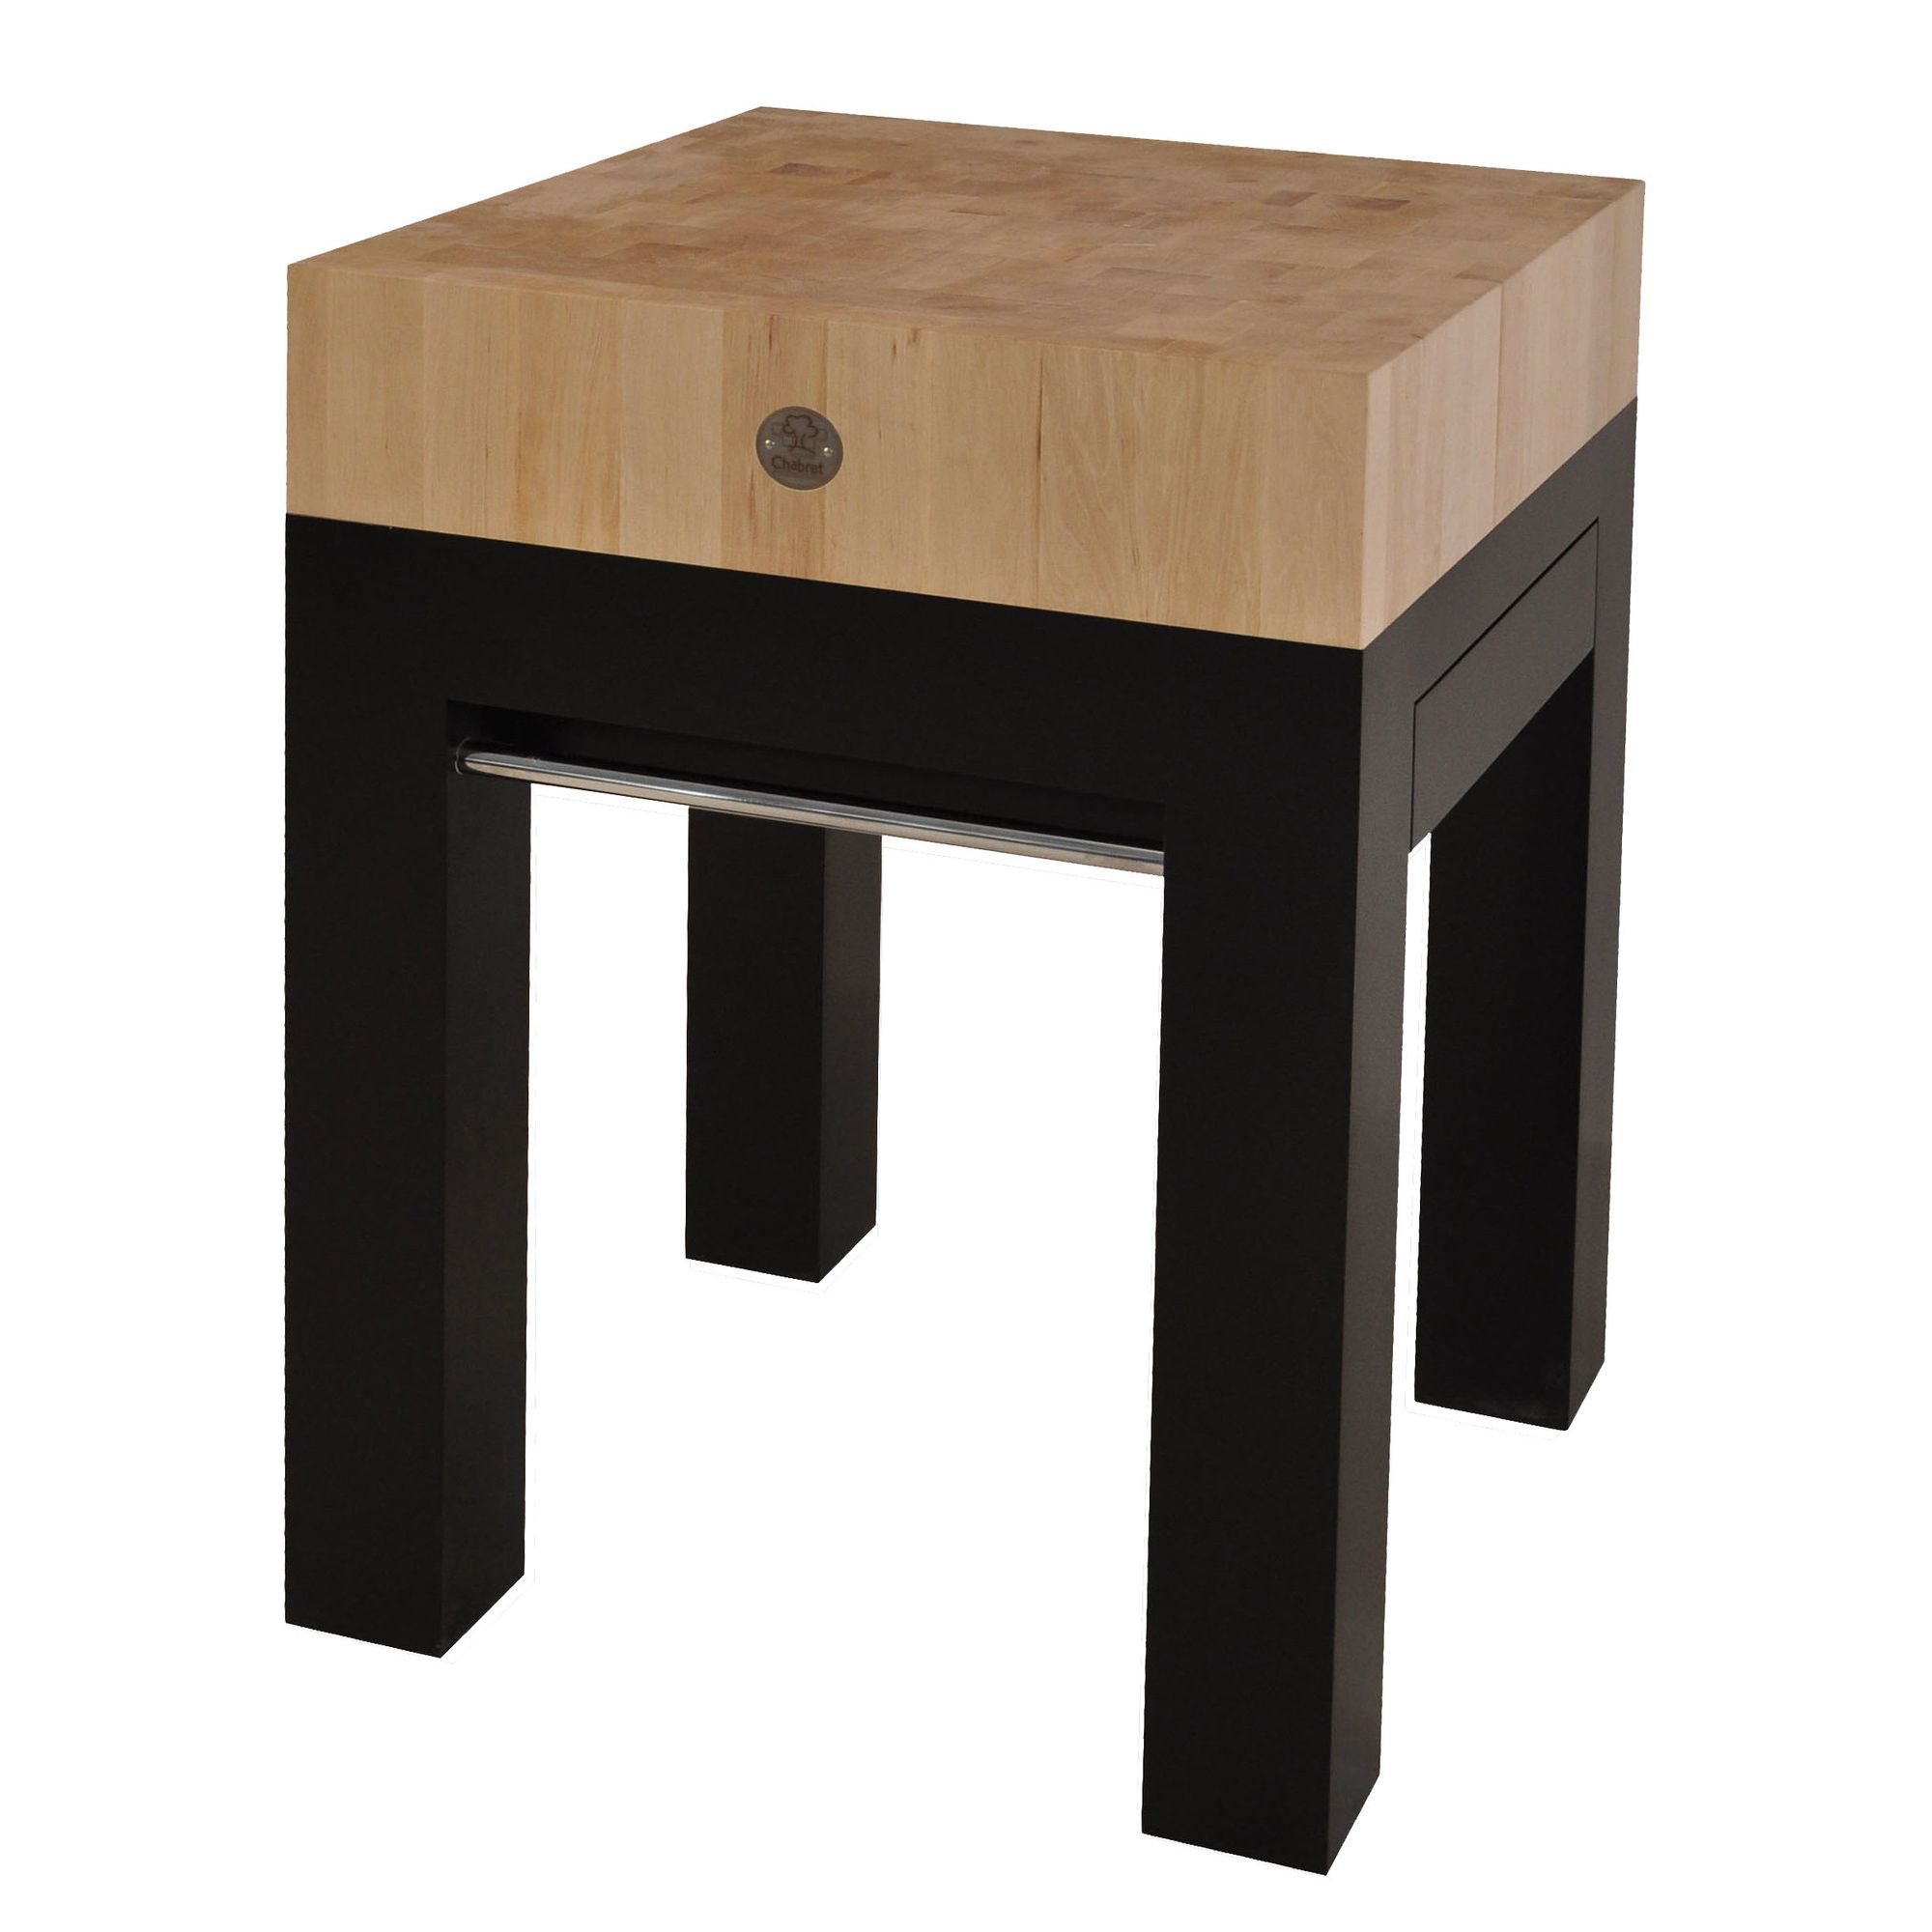 Chabret Butcher's Block by MC Berger - 90cm X 80cm X 60cm at Tesco Direct